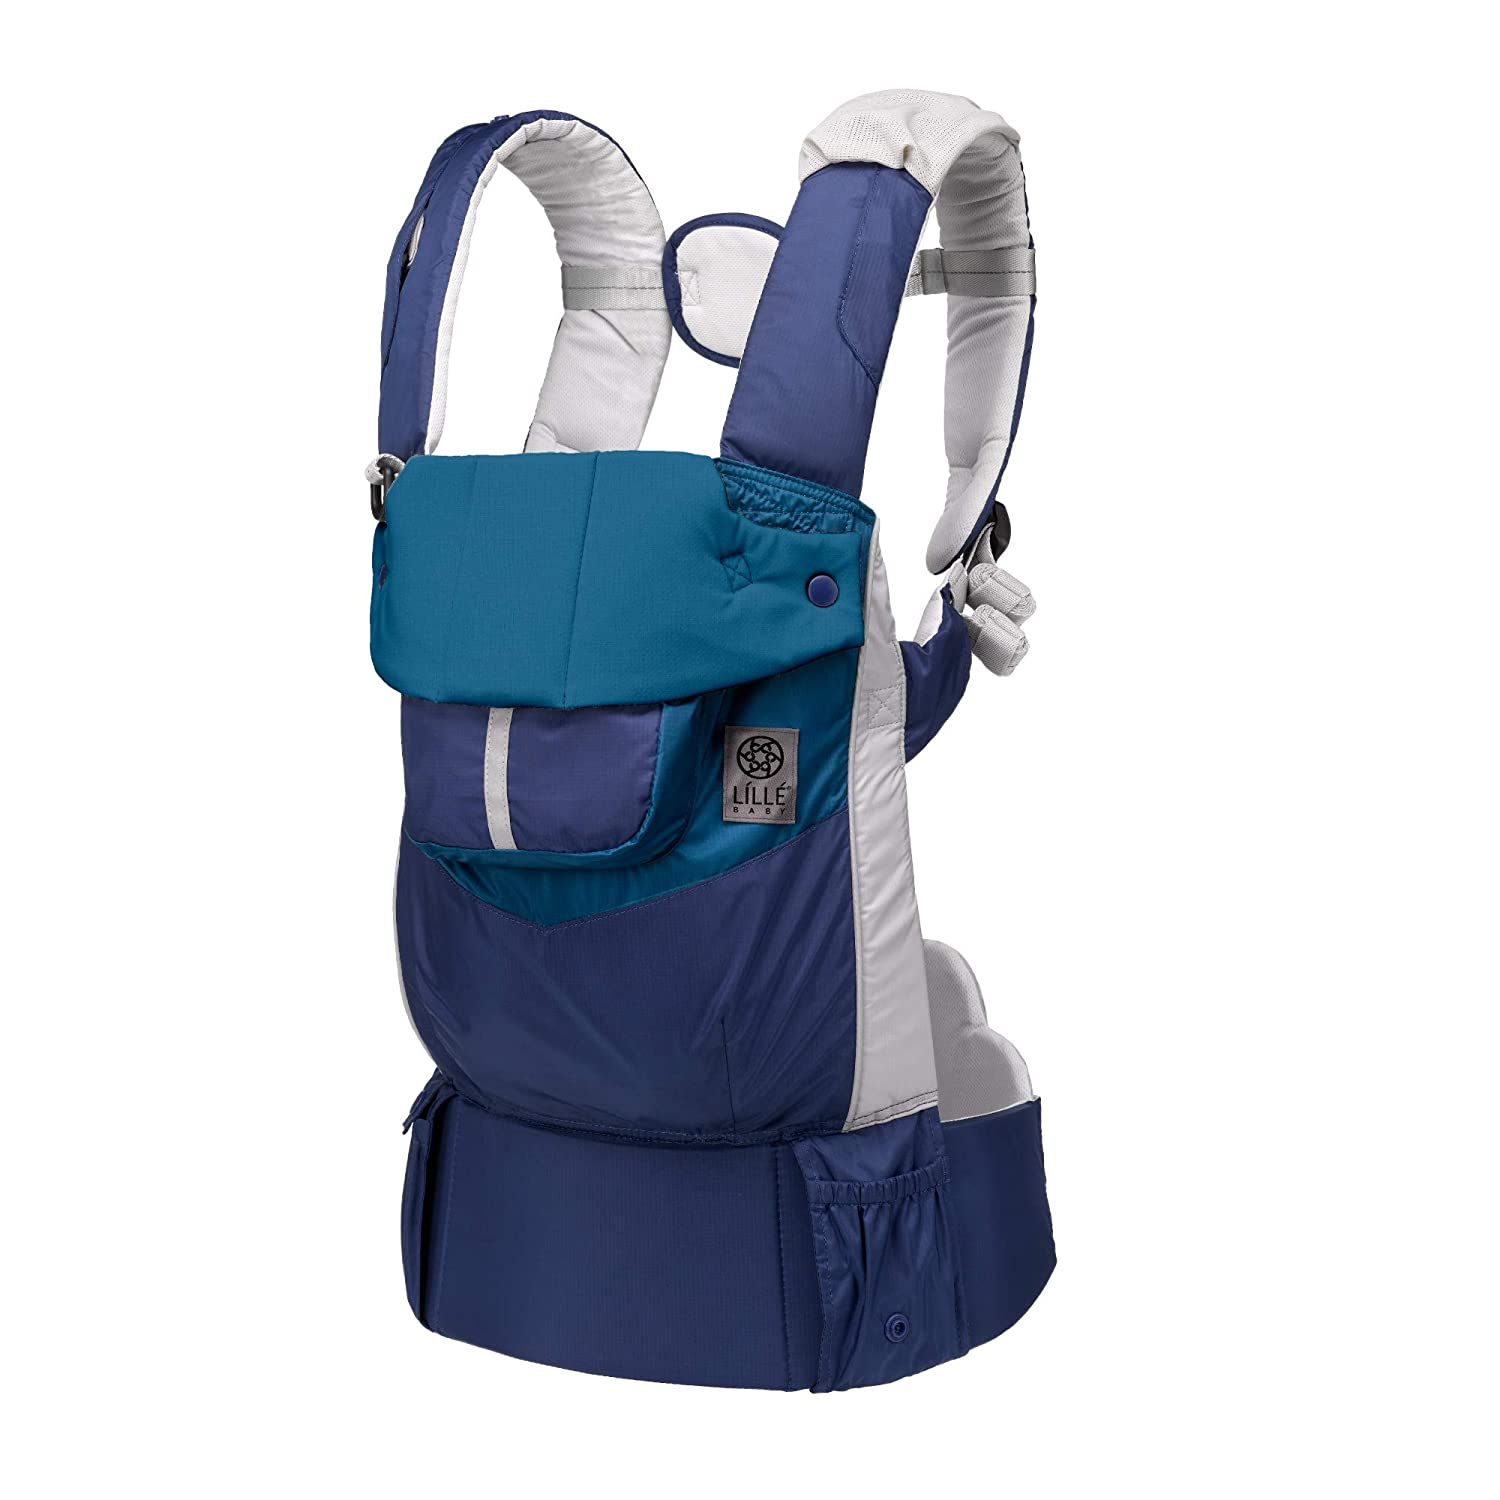 LÍLLÉbaby Pursuit Sport Lightweight All-Positions Ergonomic Baby and Child Carrier with Lumbar Support, Water